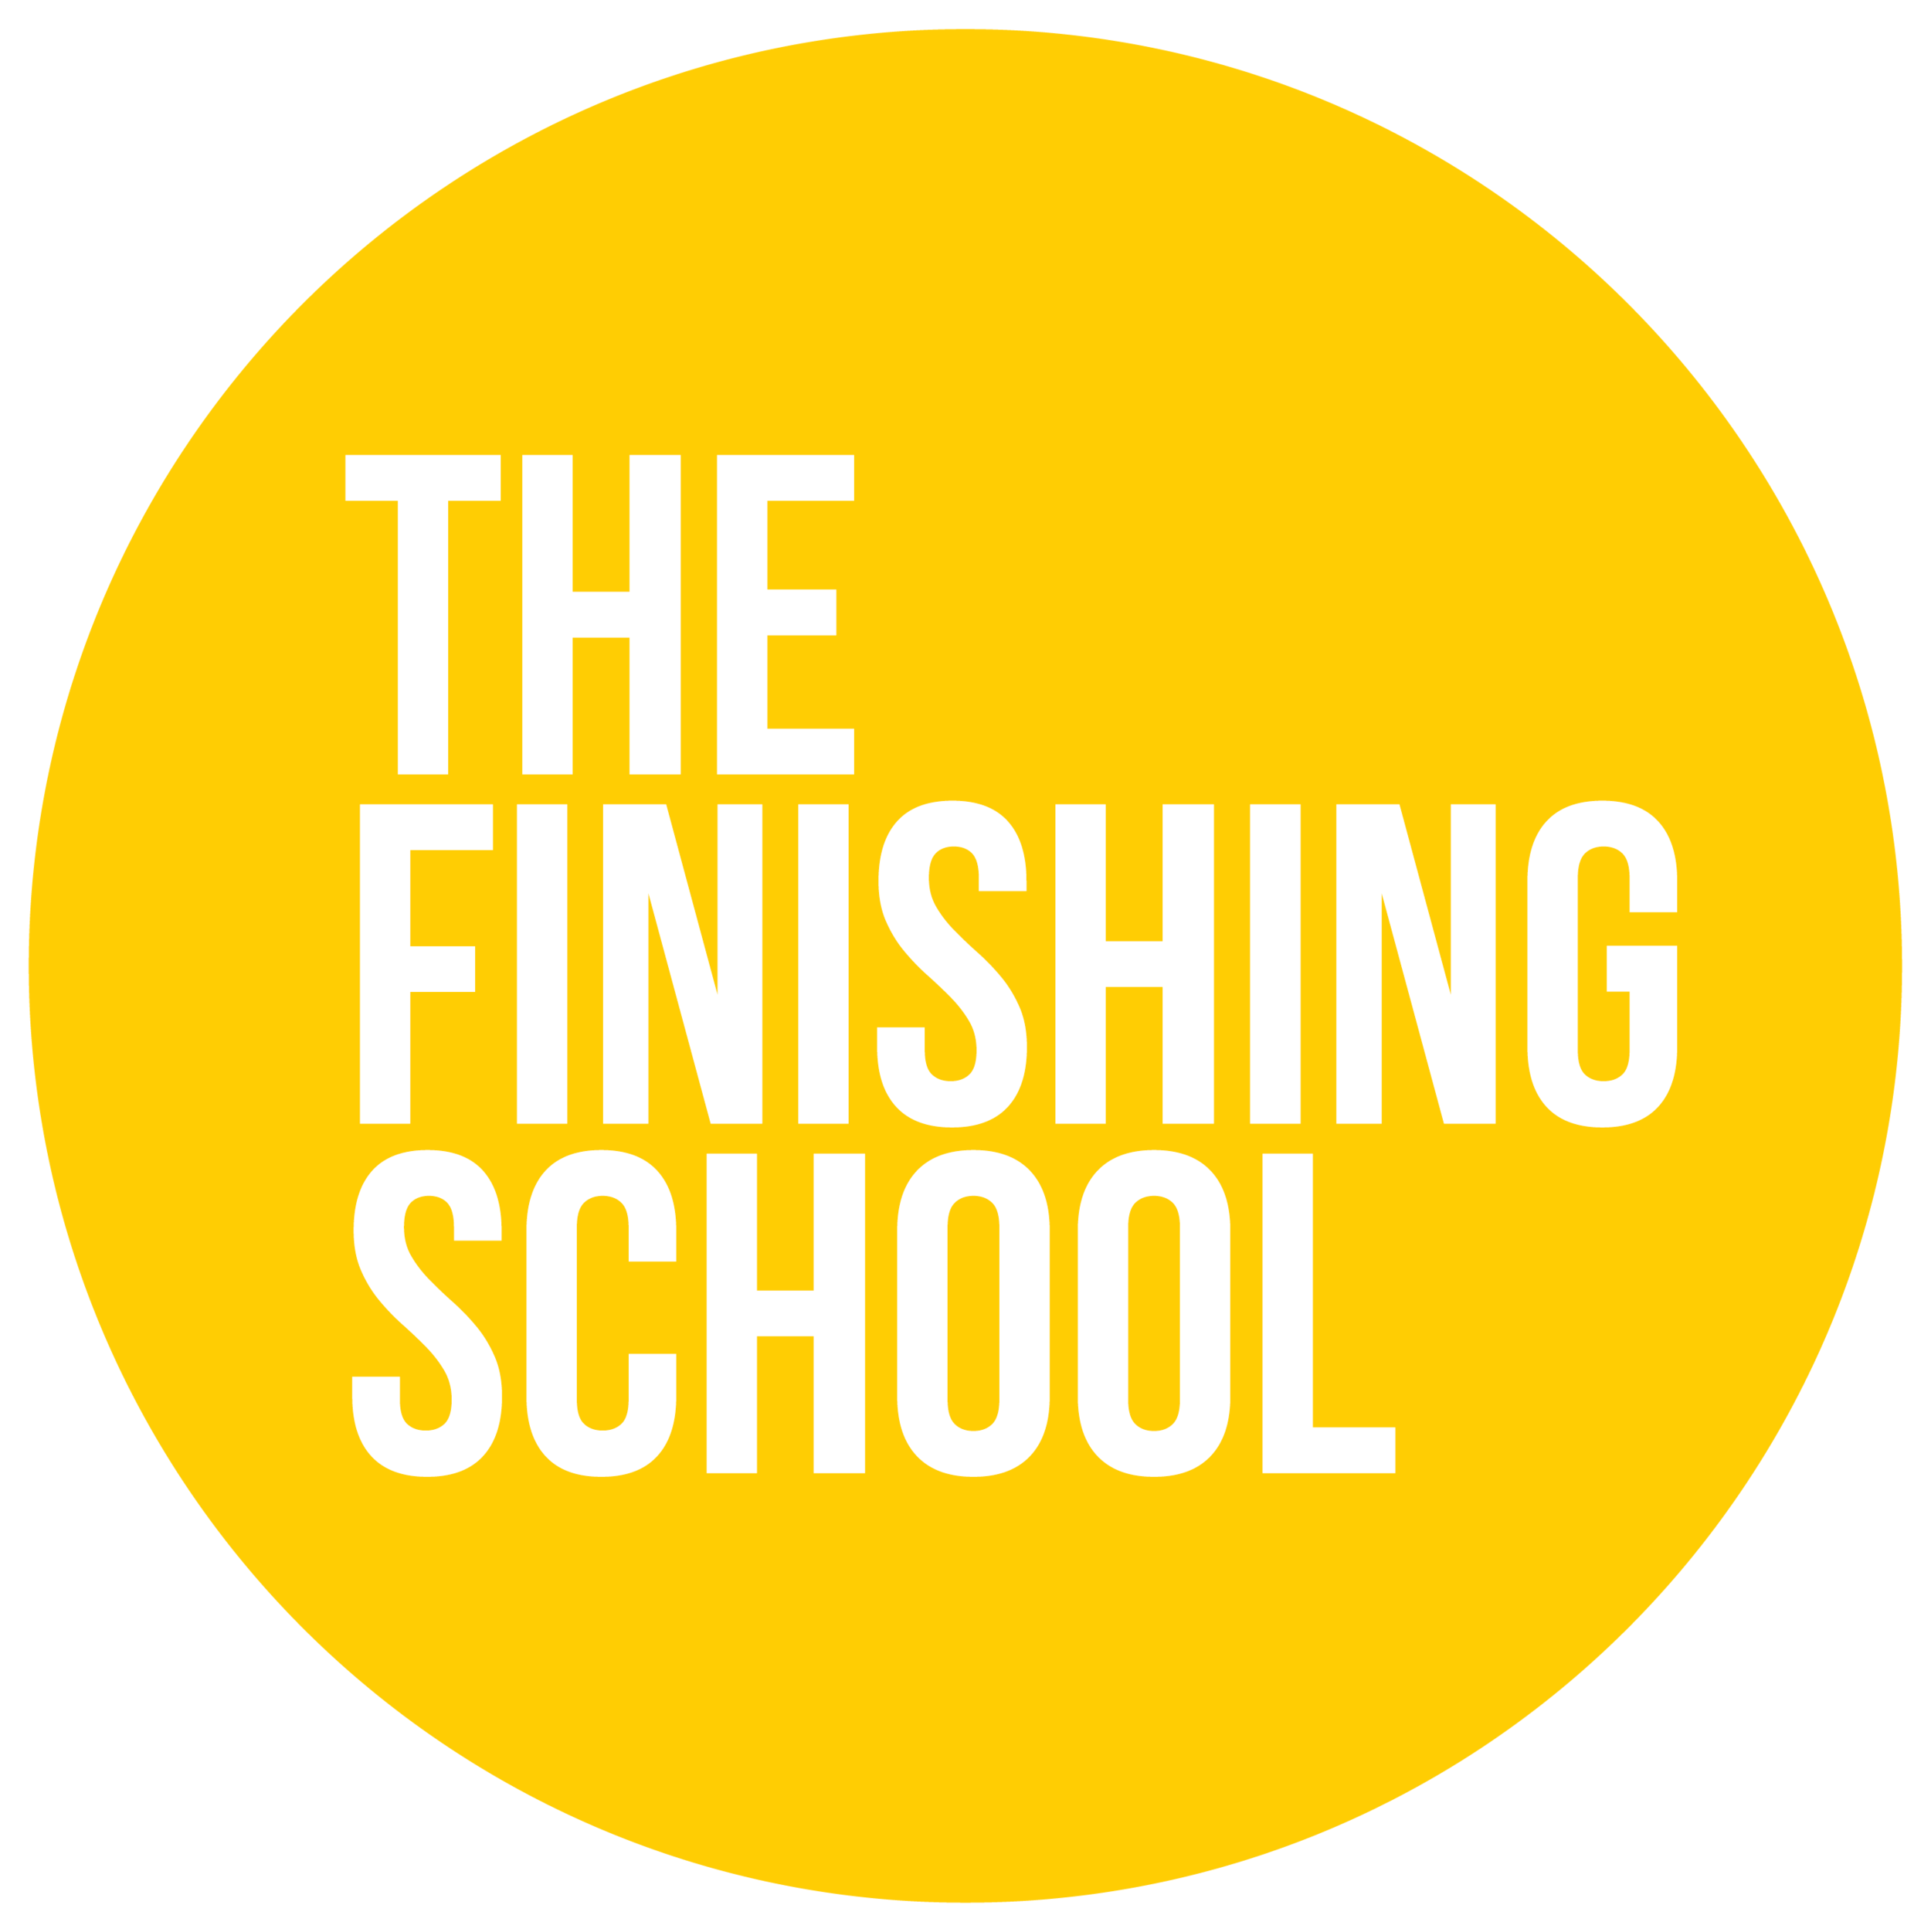 THE FINISHING SCHOOL-LOGO-circularsolid_Artboard 13.png